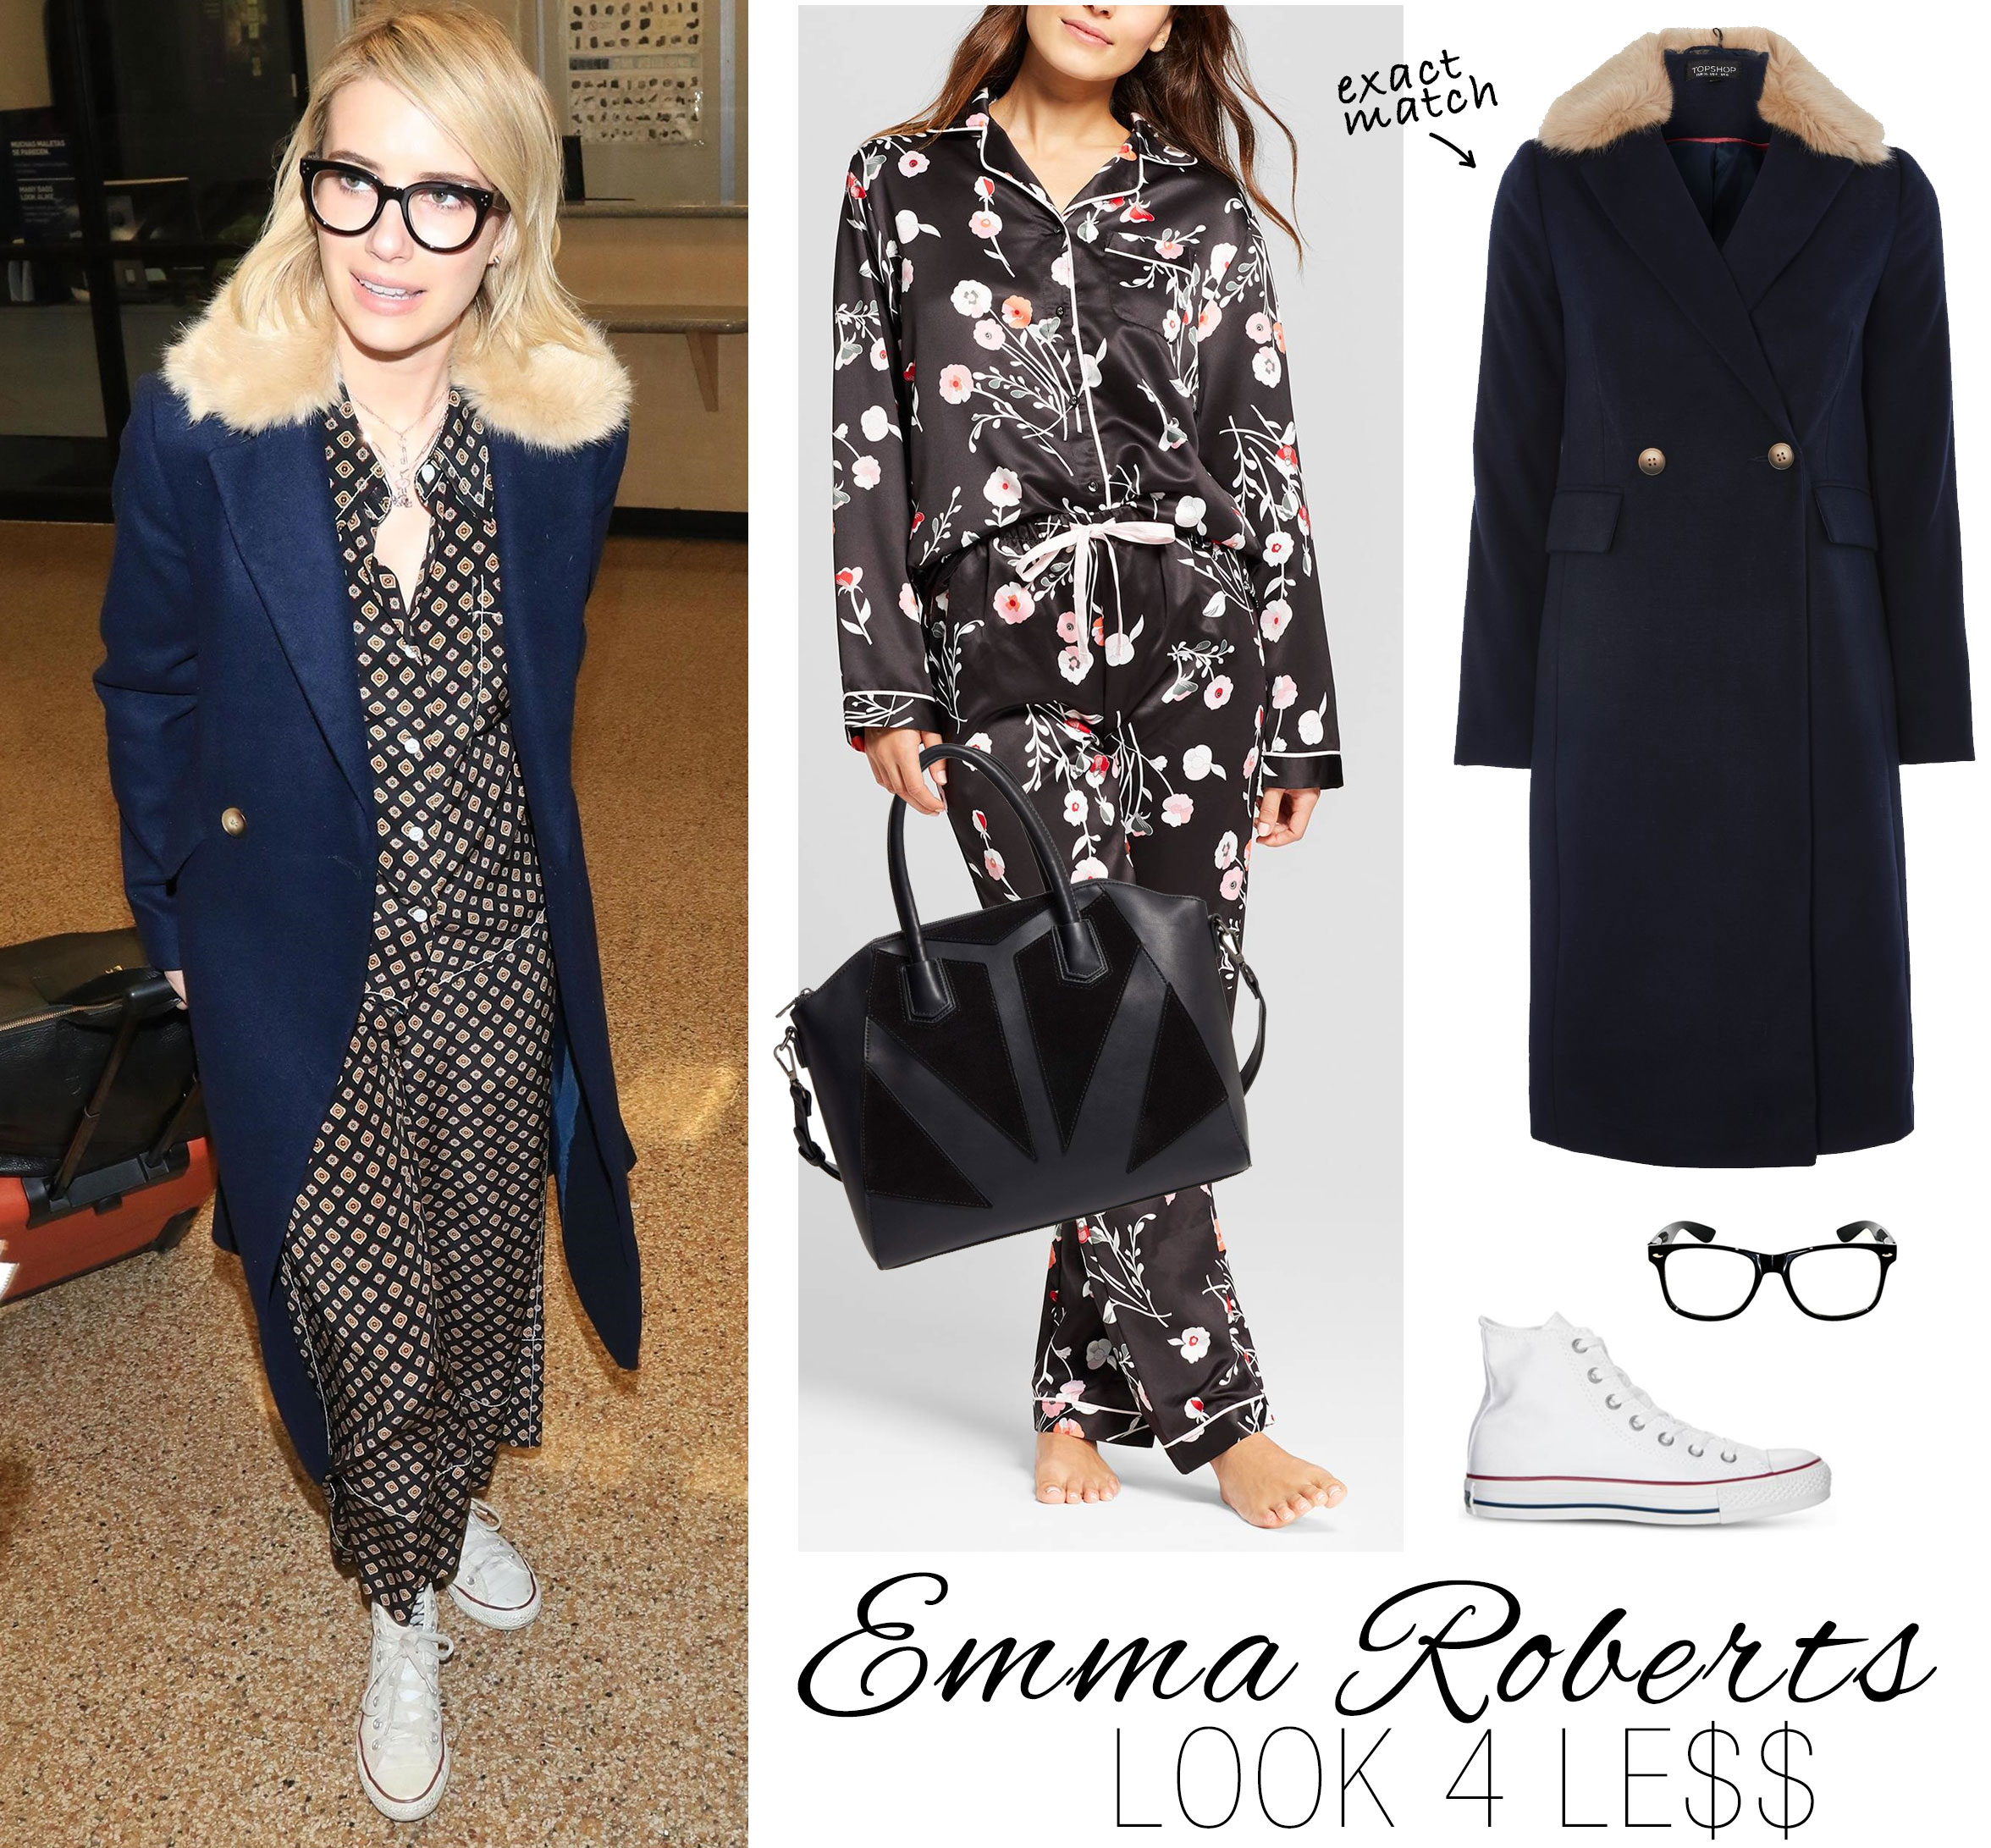 Emma Roberts wears Topshop pajamas and coat with Converse sneakers and Celine geek glasses.